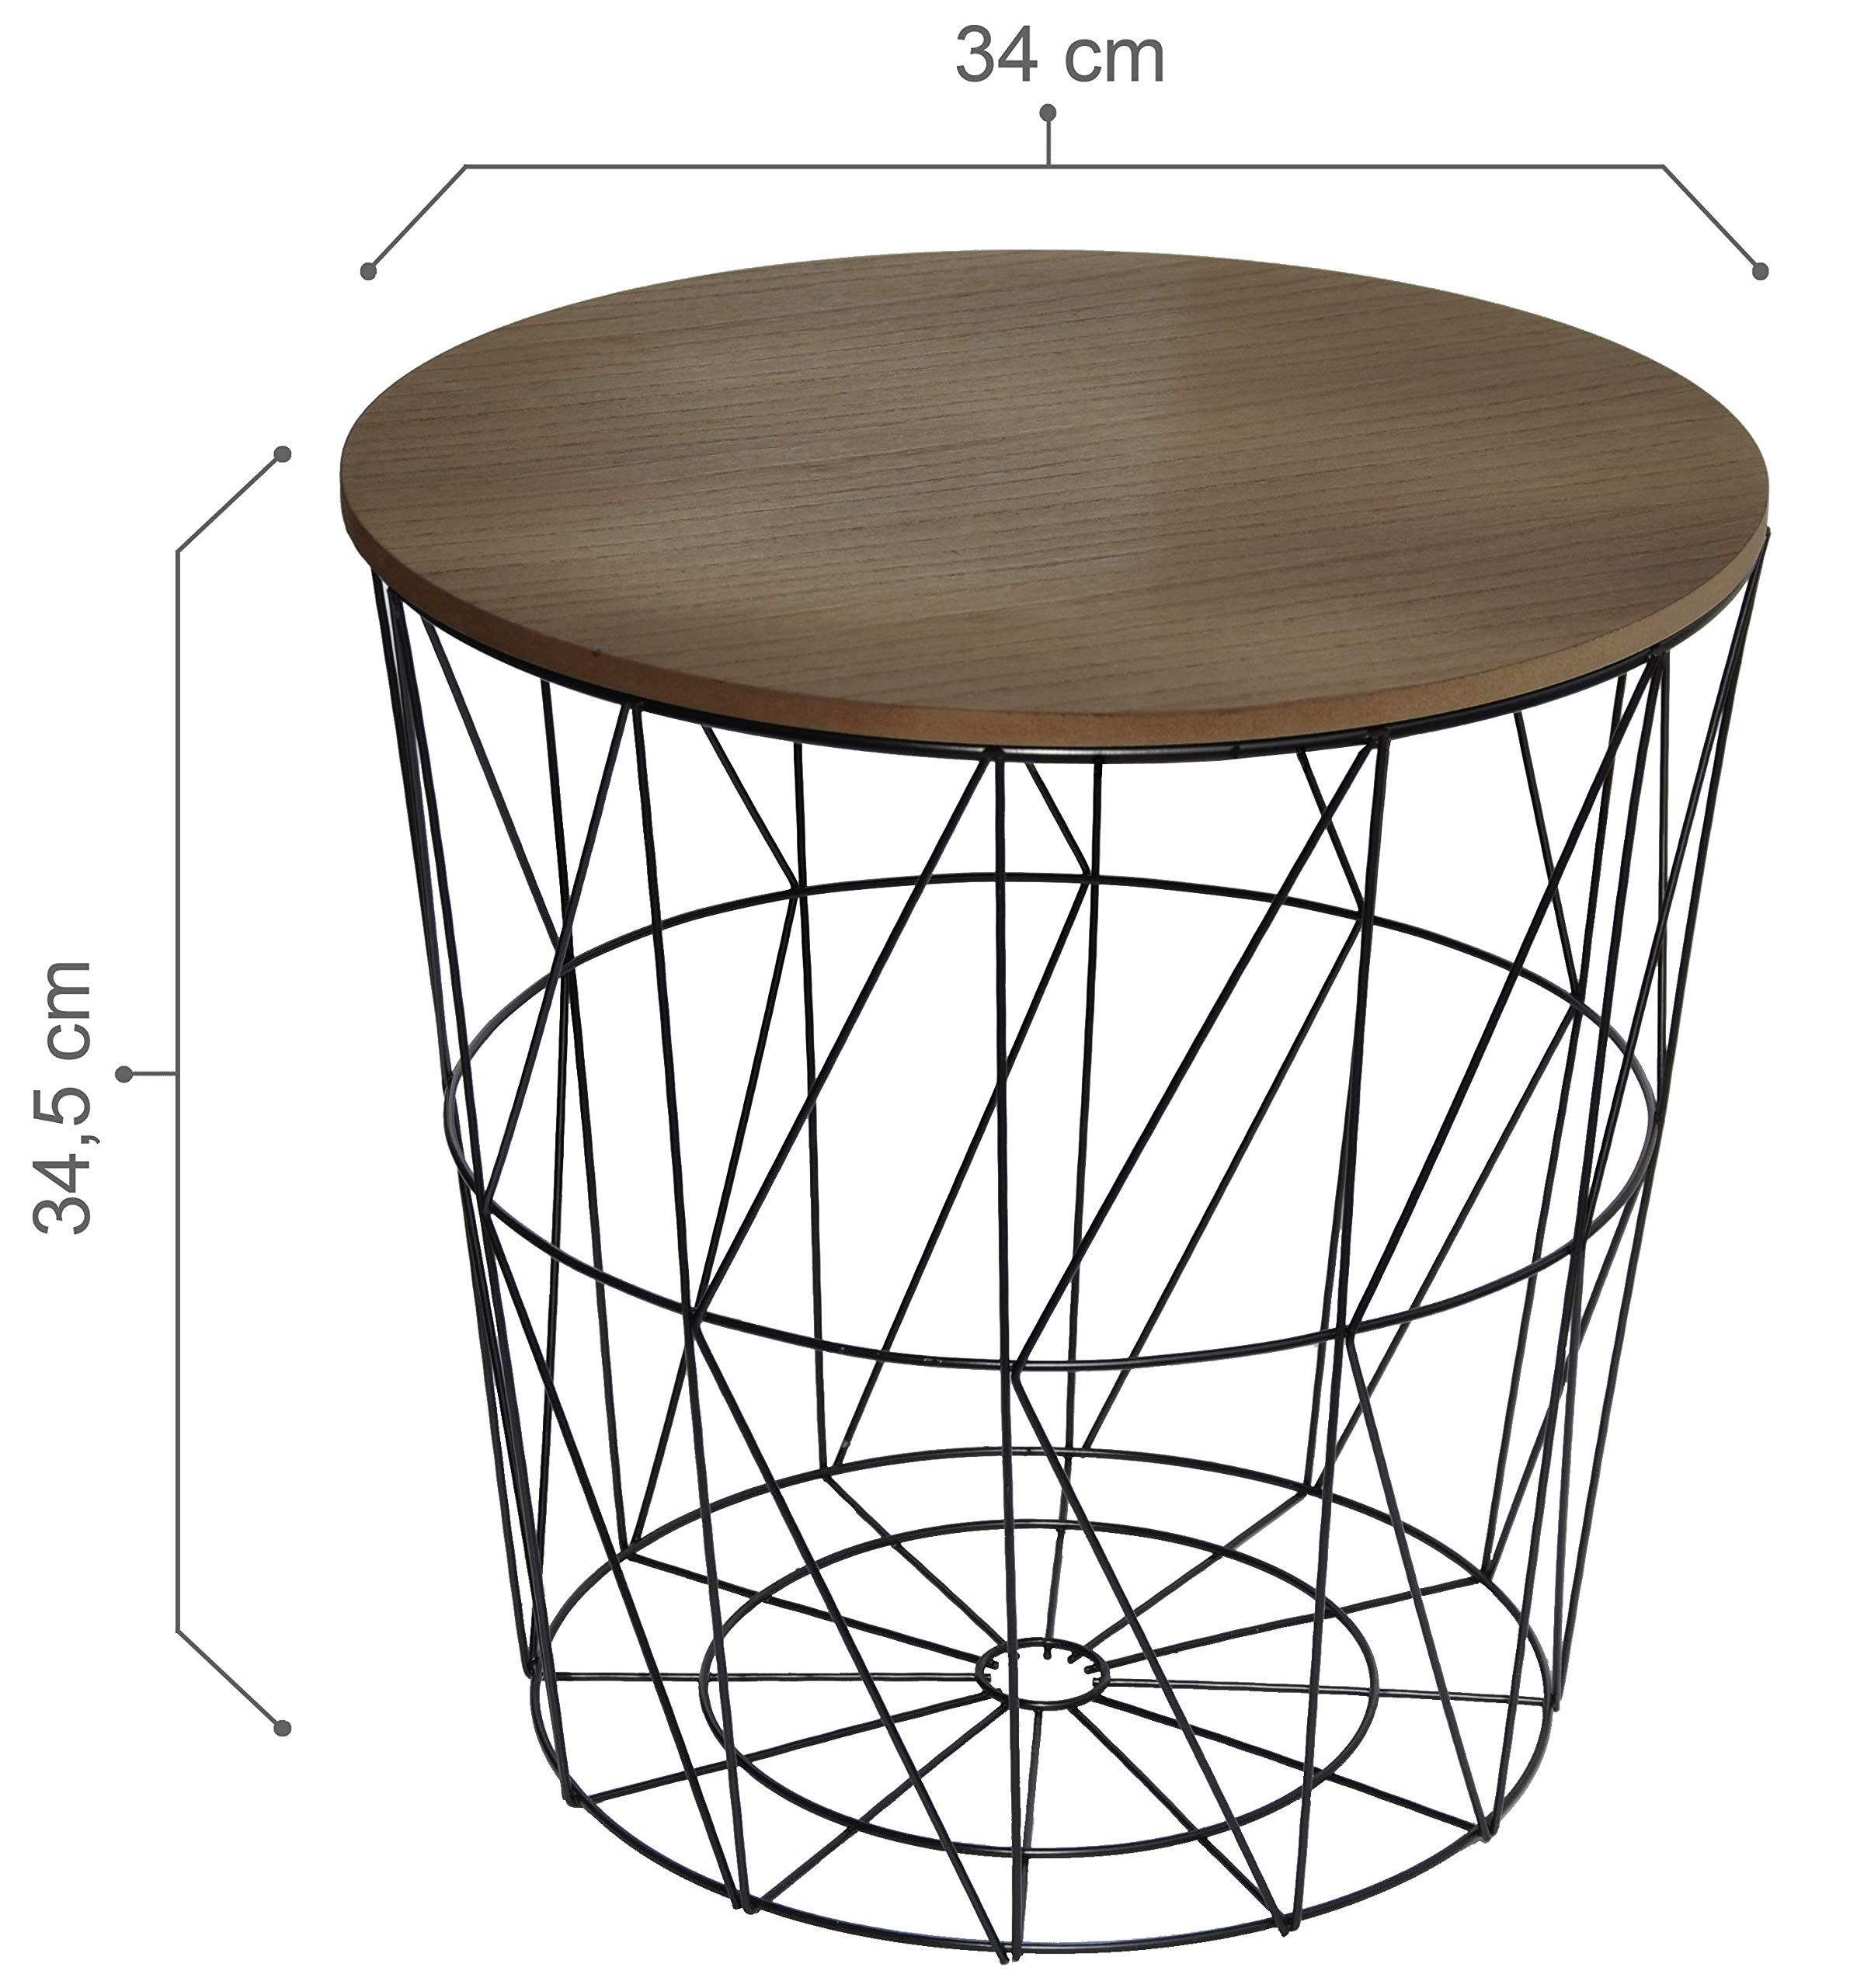 Calutea Moderner Beistelltisch Rund Drahtkorb Metall Schwarz Holz Design Braun In 2020 With Images Side Table Home Decor Table